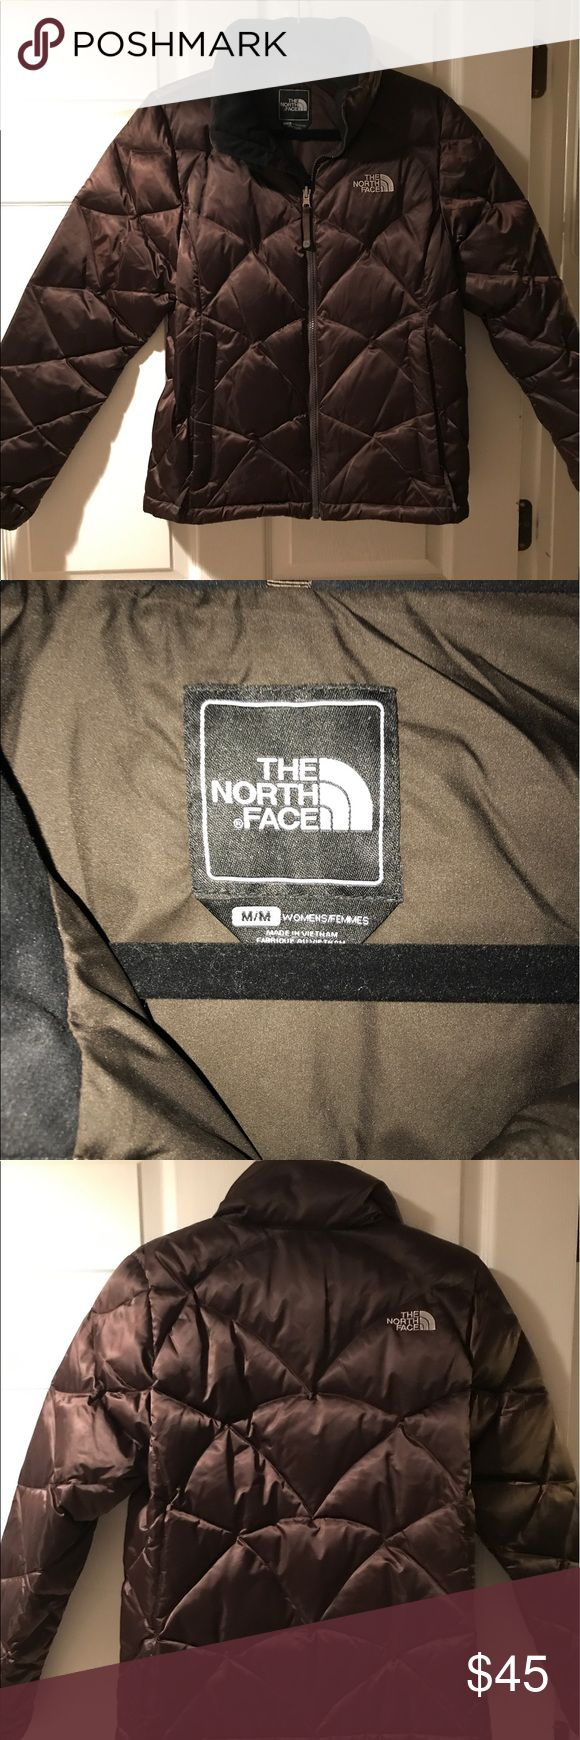 Women's North Face winter jacket (medium) Women's North Face winter jacket (brown), size medium.  Rarely worn, almost new The North Face Jackets & Coats Puffers